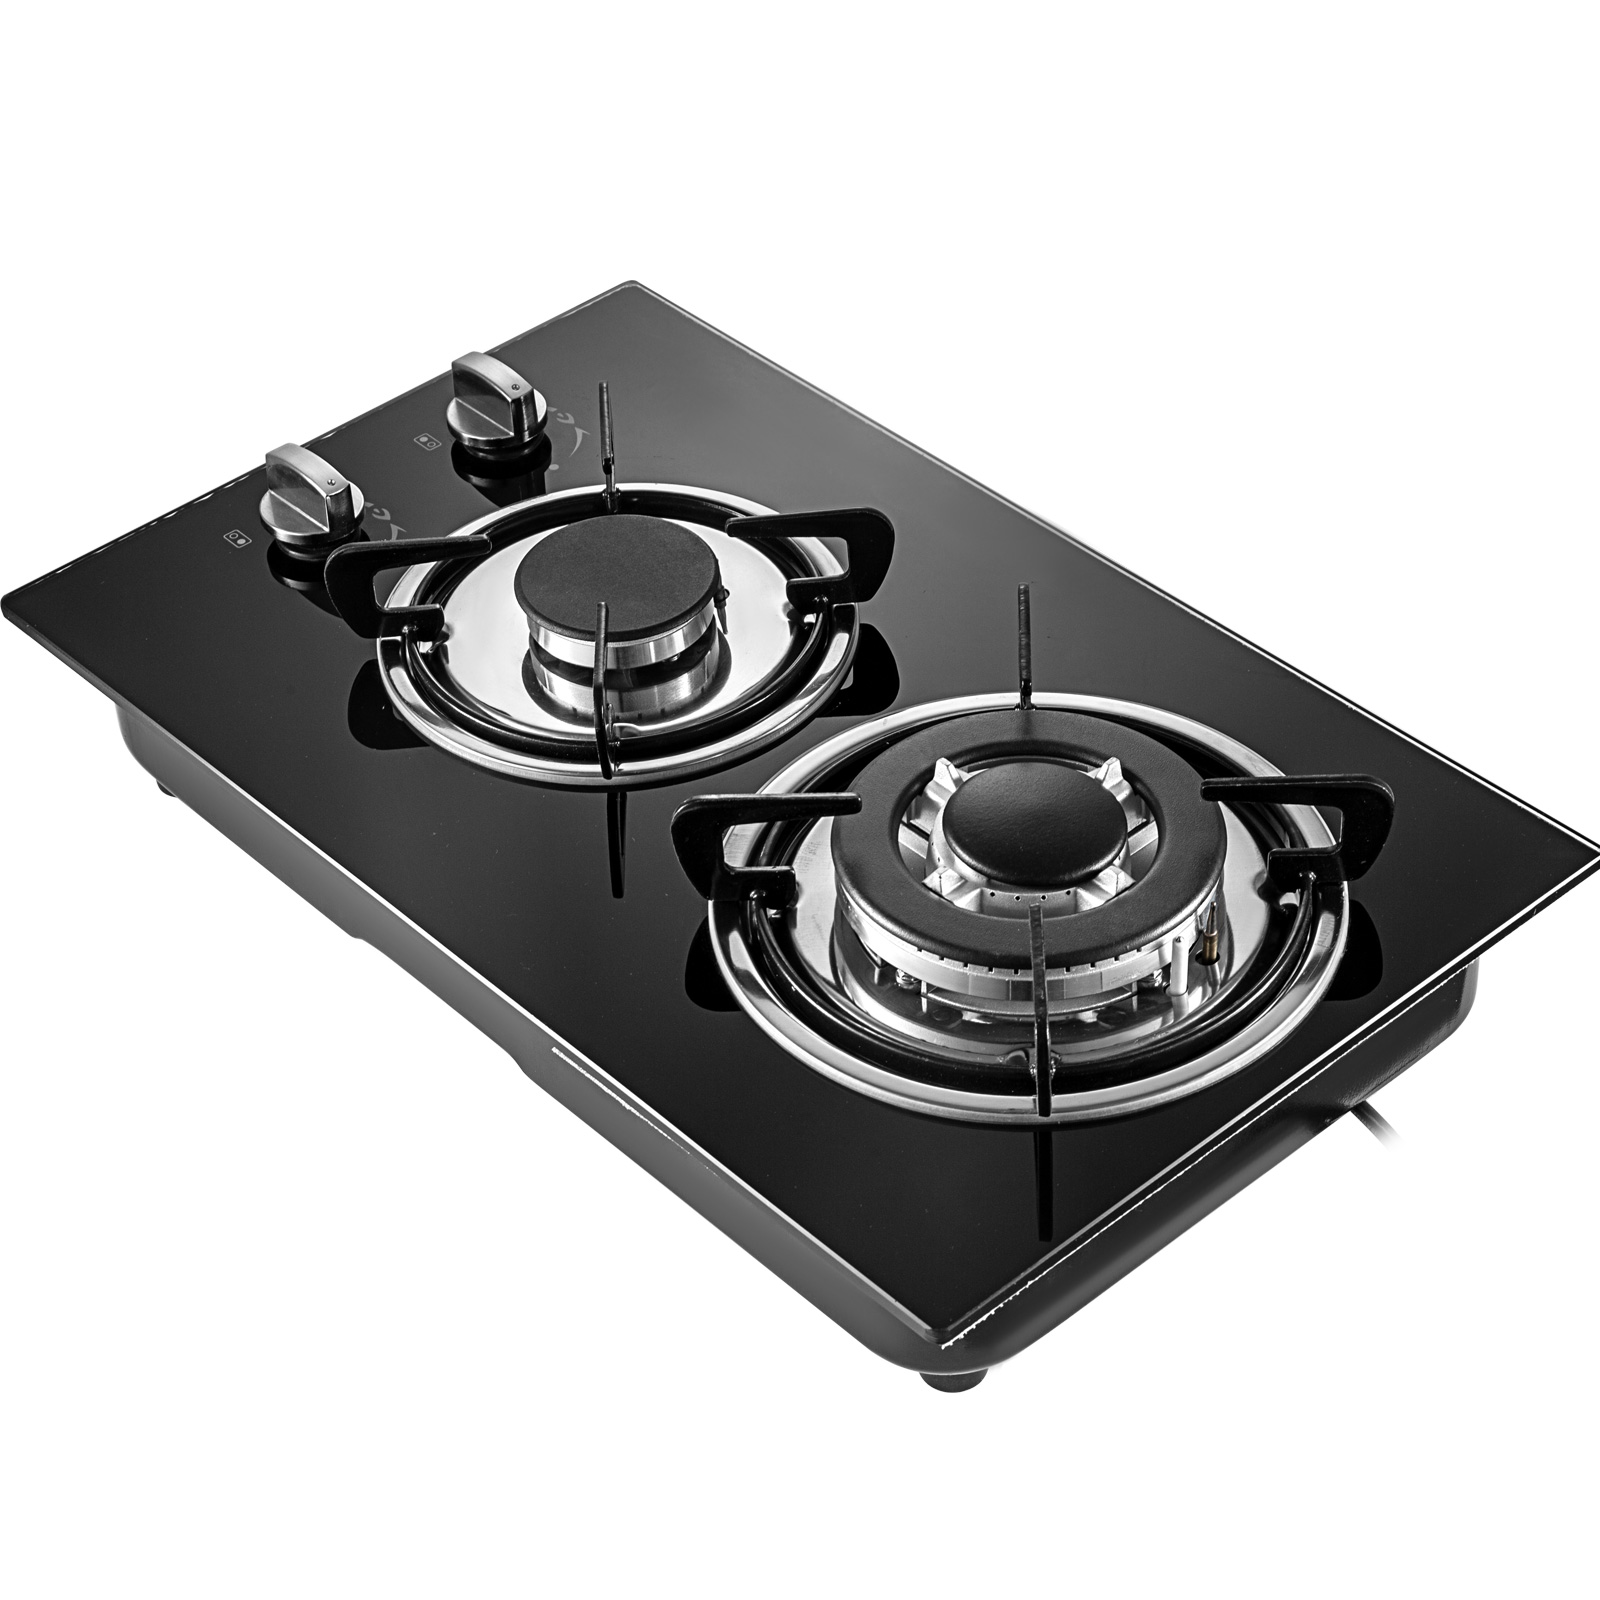 """12""""~36"""" Built-in Stove Gas Cooktop Stainless Steel Iron"""